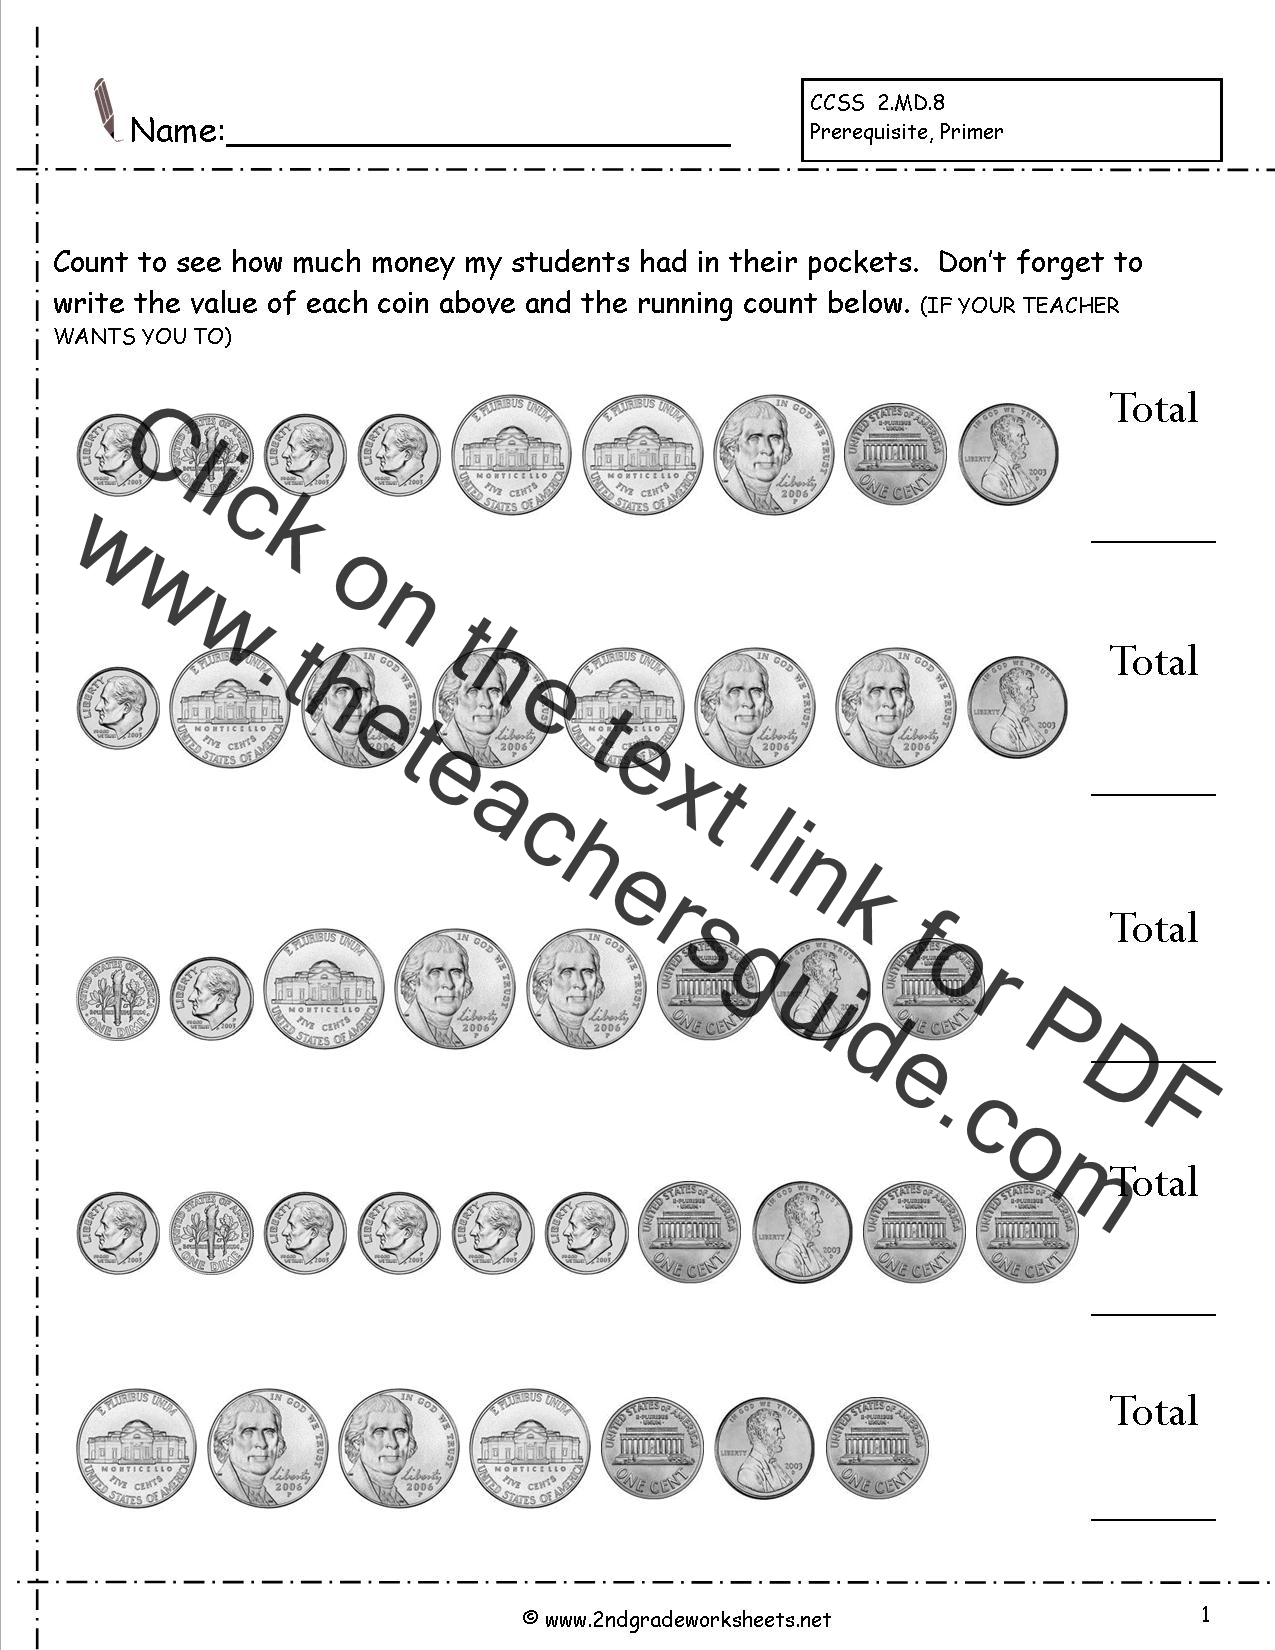 Printables Counting Coins Worksheets counting coins and money worksheets printouts worksheet